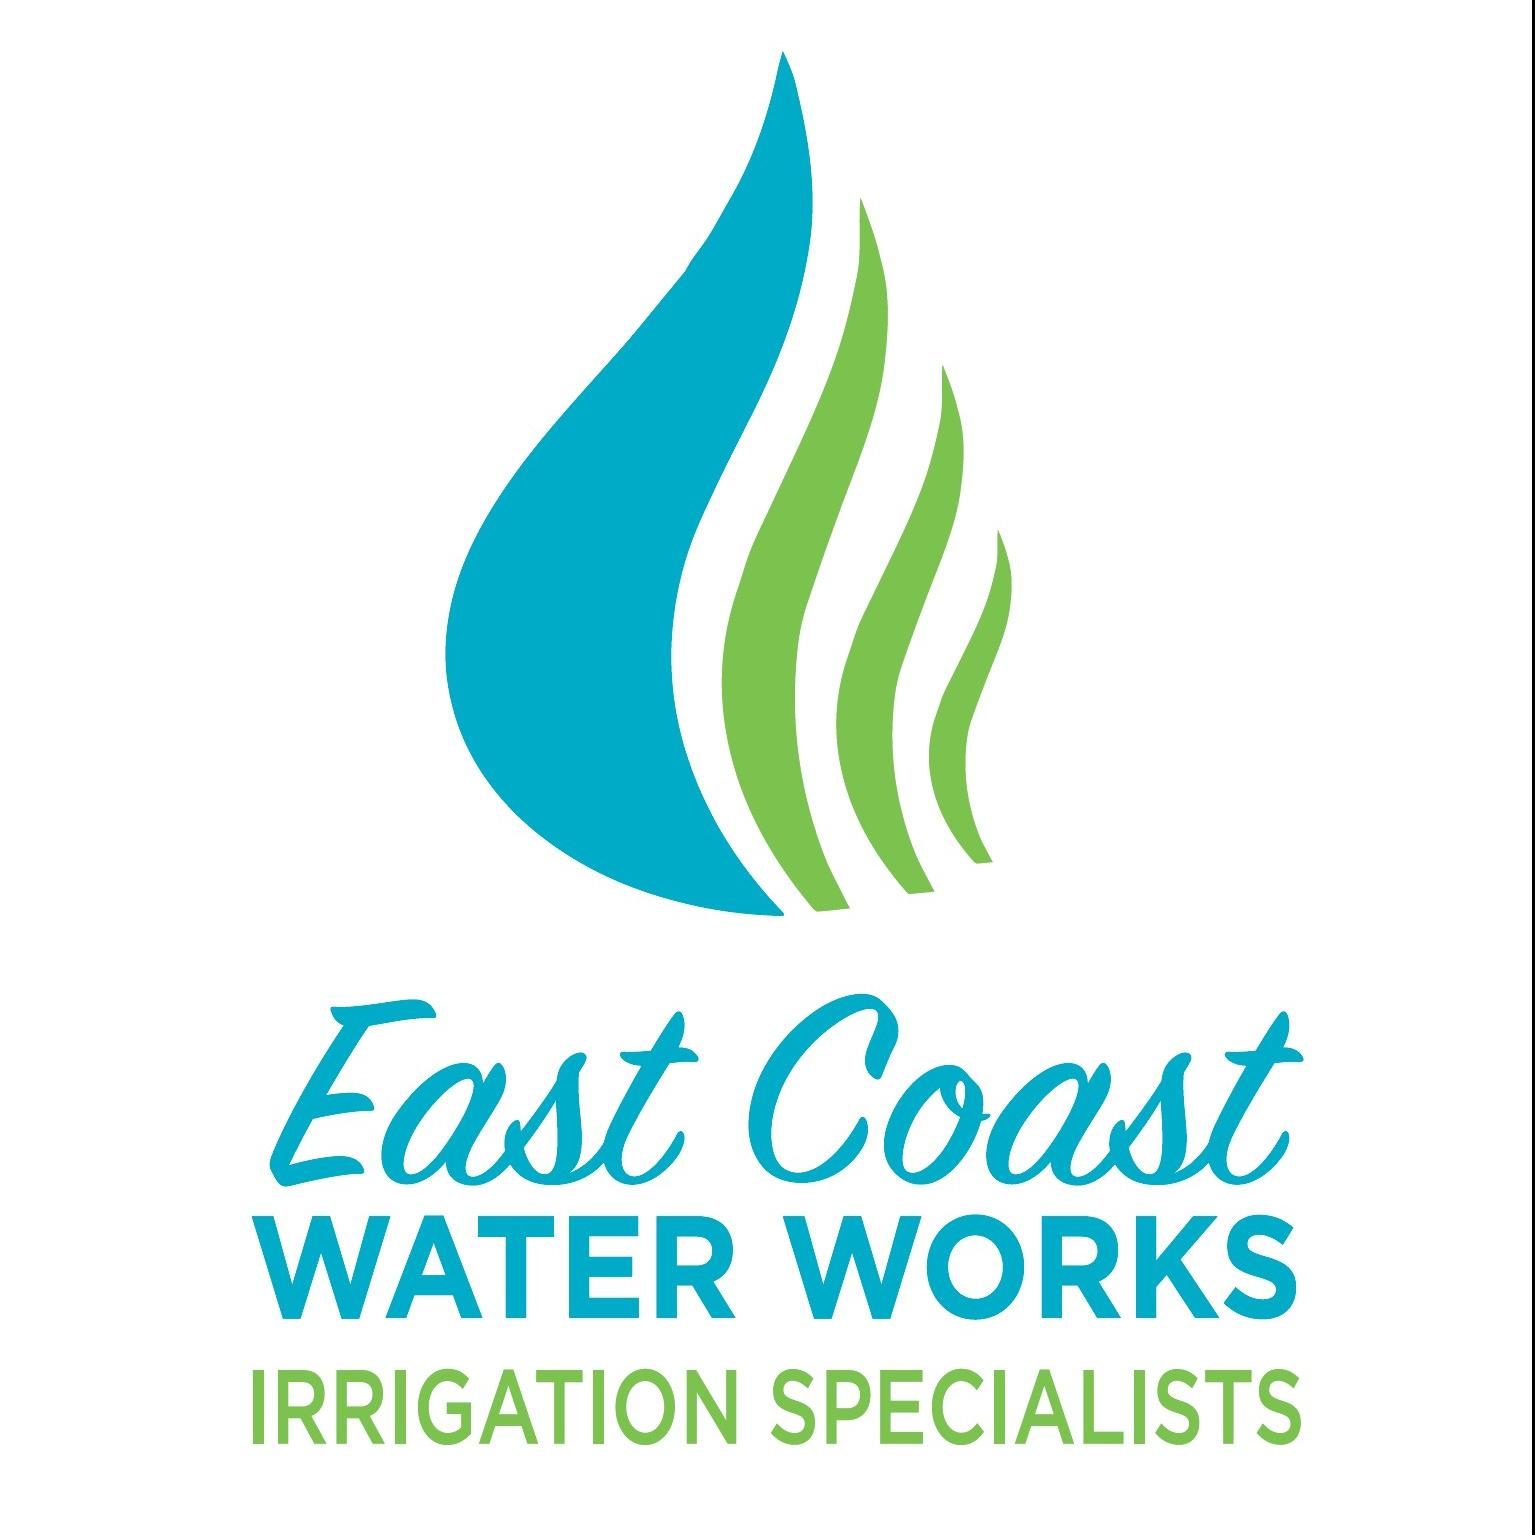 East Coast Water Works